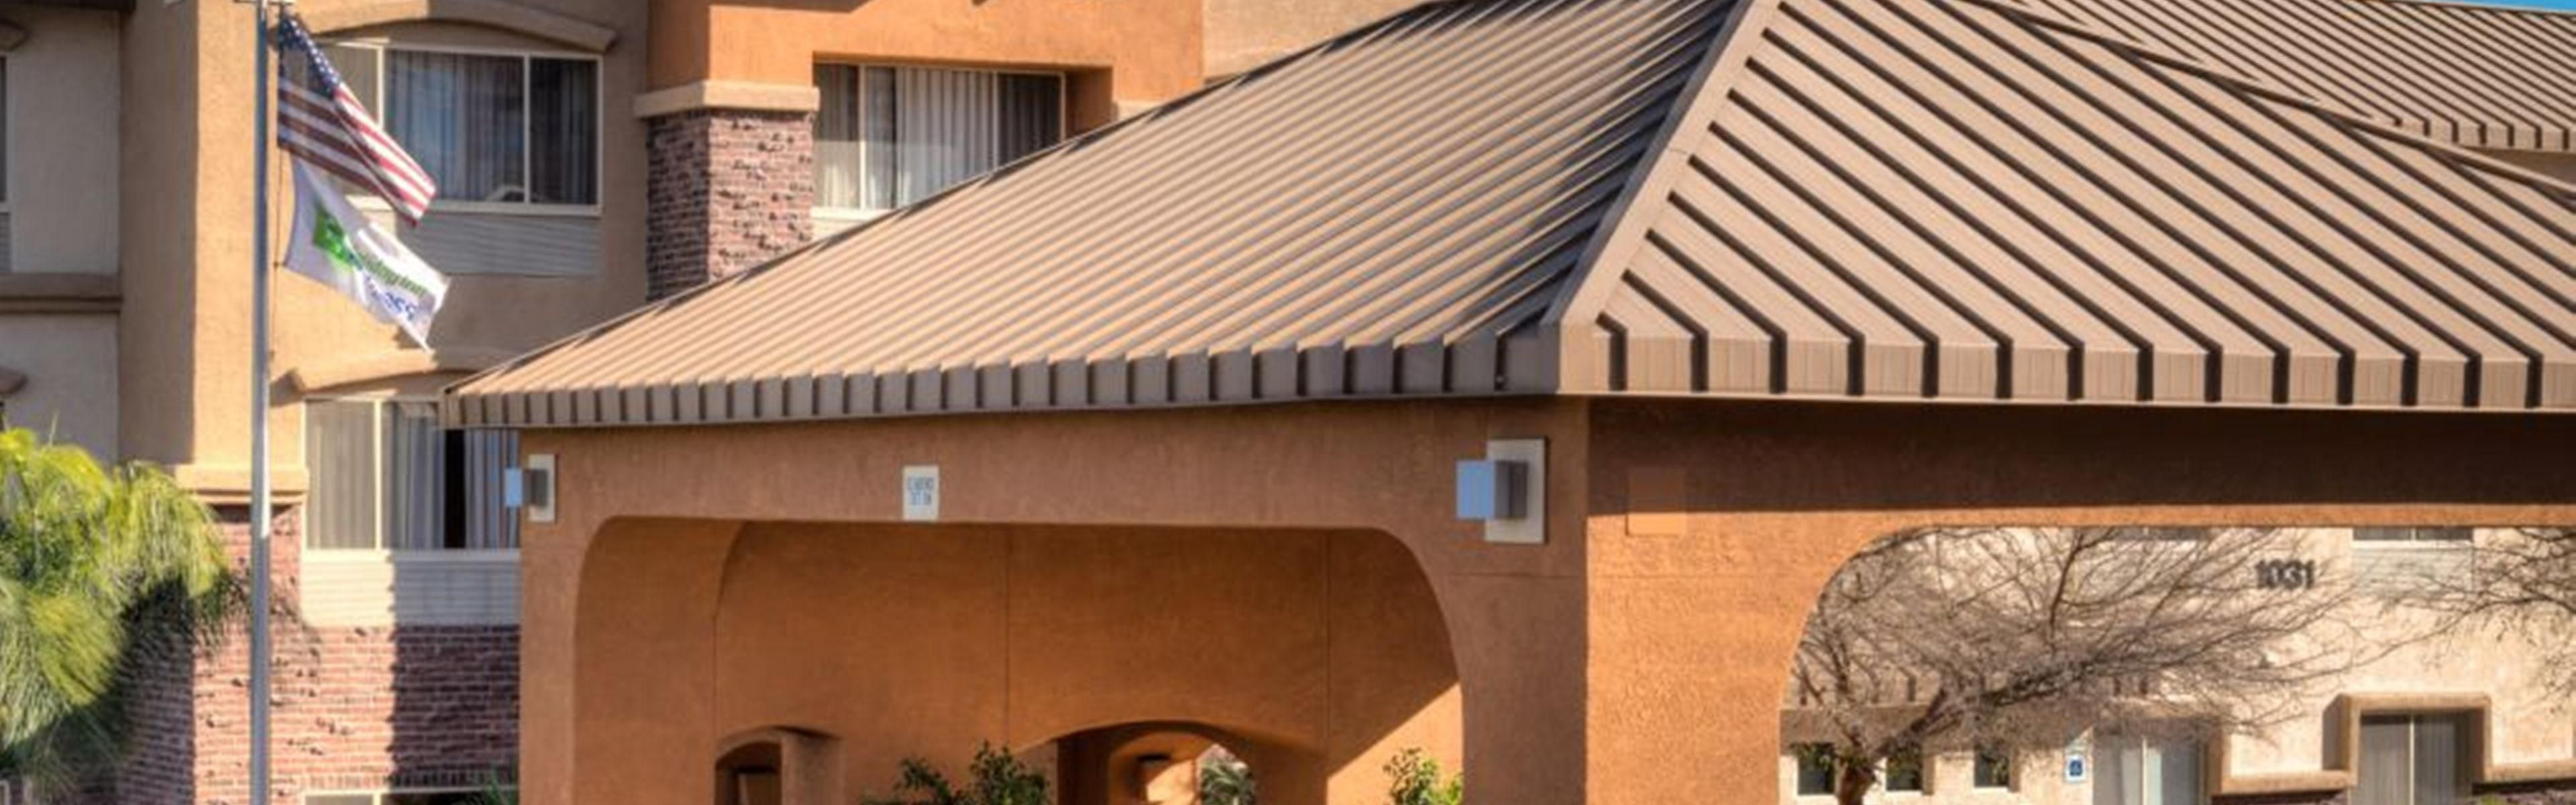 Holiday Inn Express & Suites Phoenix Tempe - University image 0